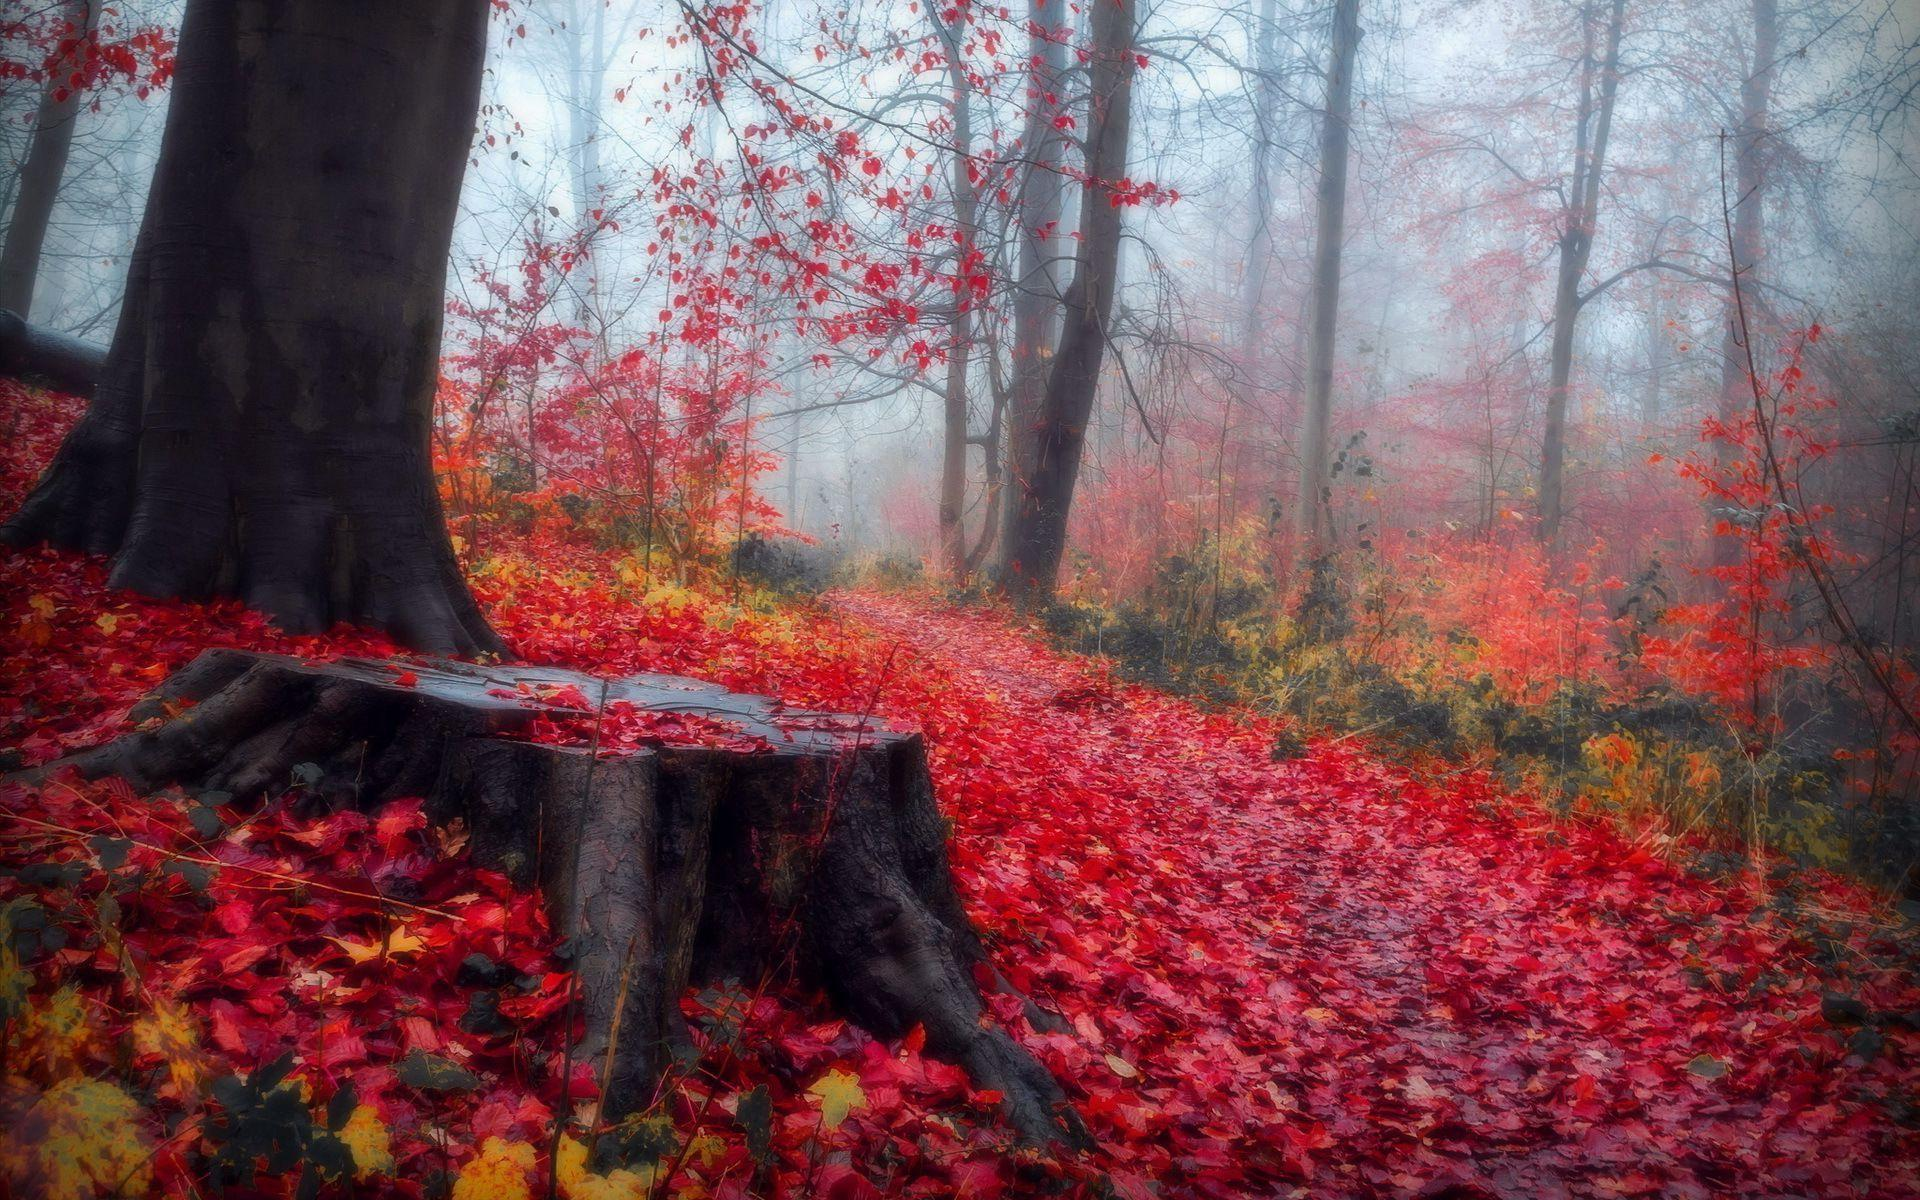 black computer chair womb reproduction hd red leaves in the autumn forest wallpaper   download free - 149959